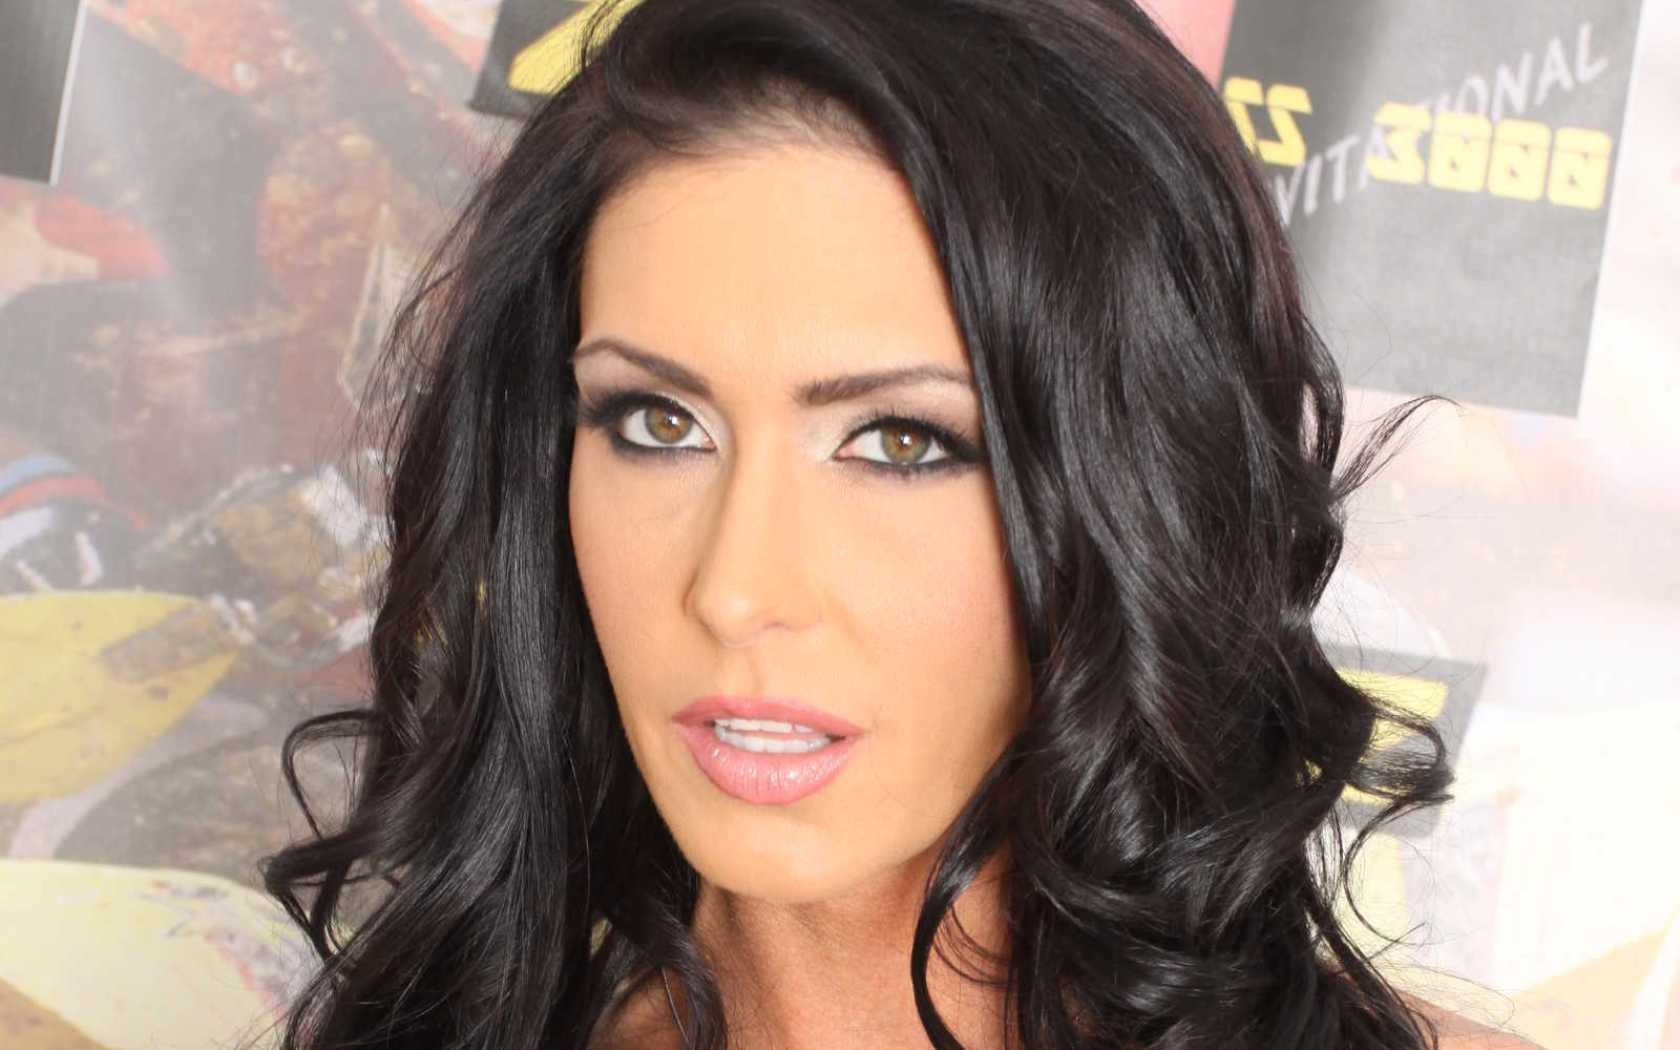 jessica jaymes wallpapers images photos pictures backgrounds